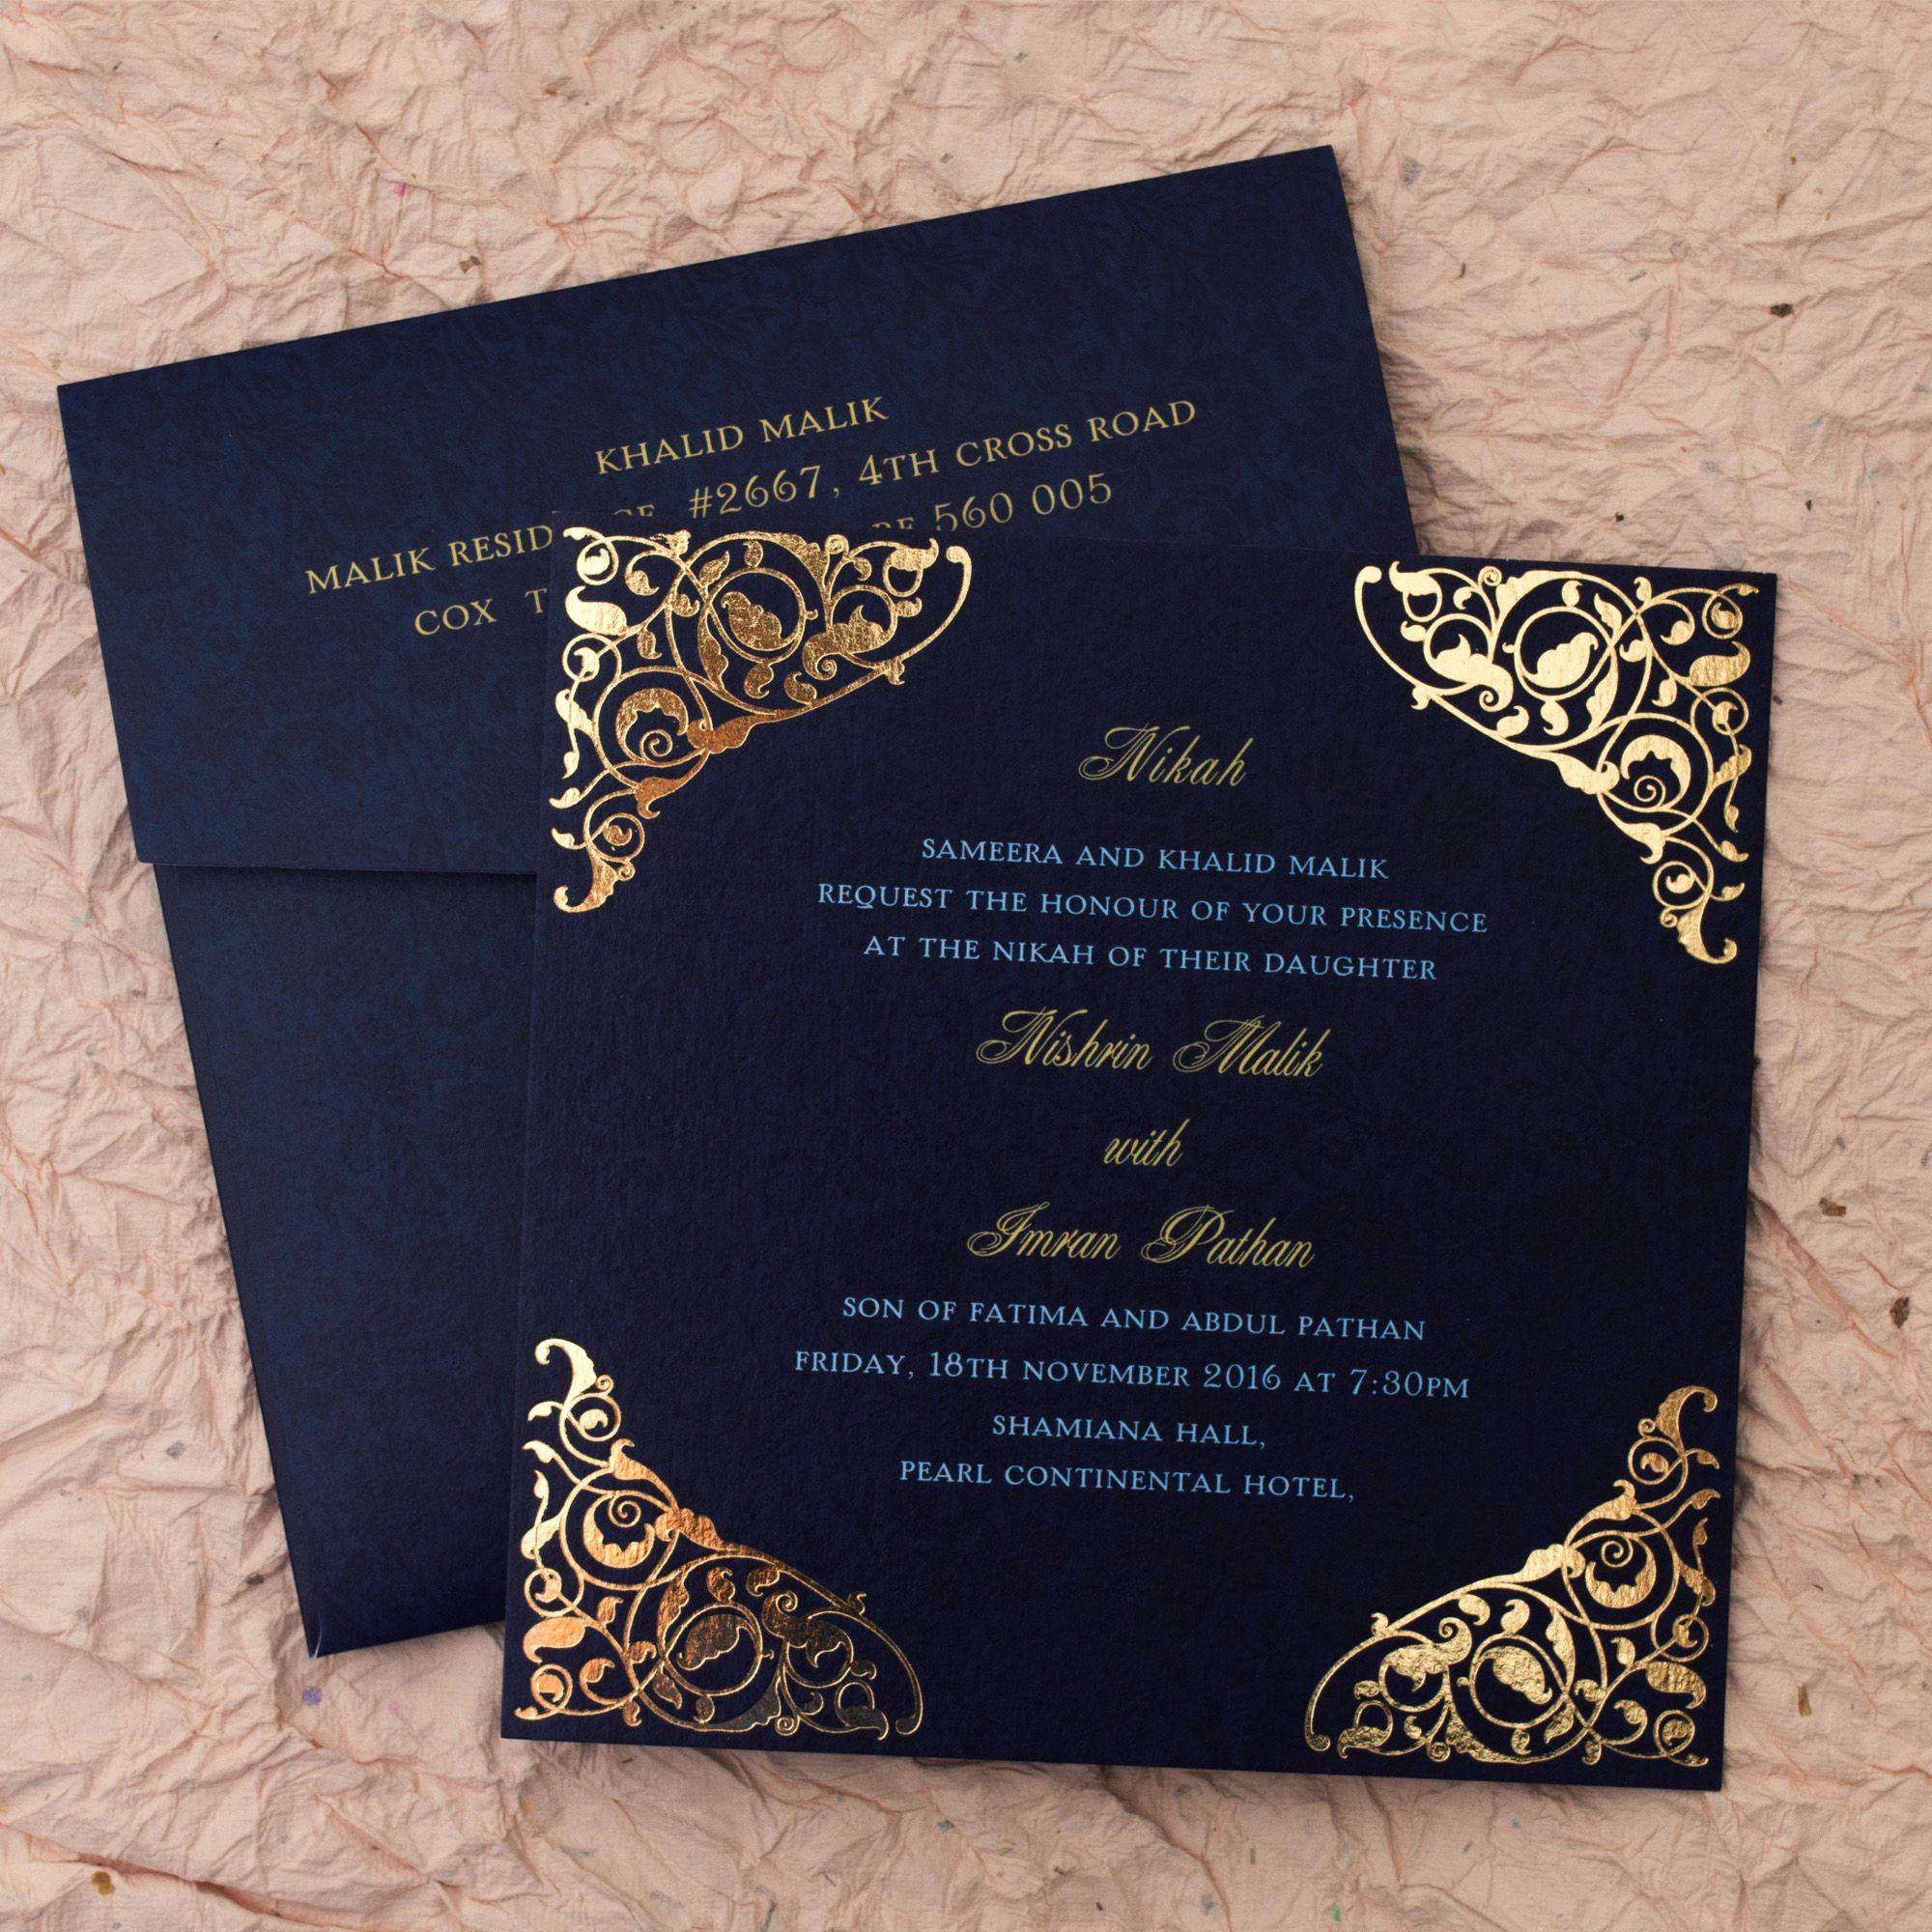 Gulshan Blue Wedding Islamic Cards Add A Touch Of Elegance To Your Nikah Wi Wedding Invitation Card Design Marriage Invitation Card Muslim Wedding Invitations